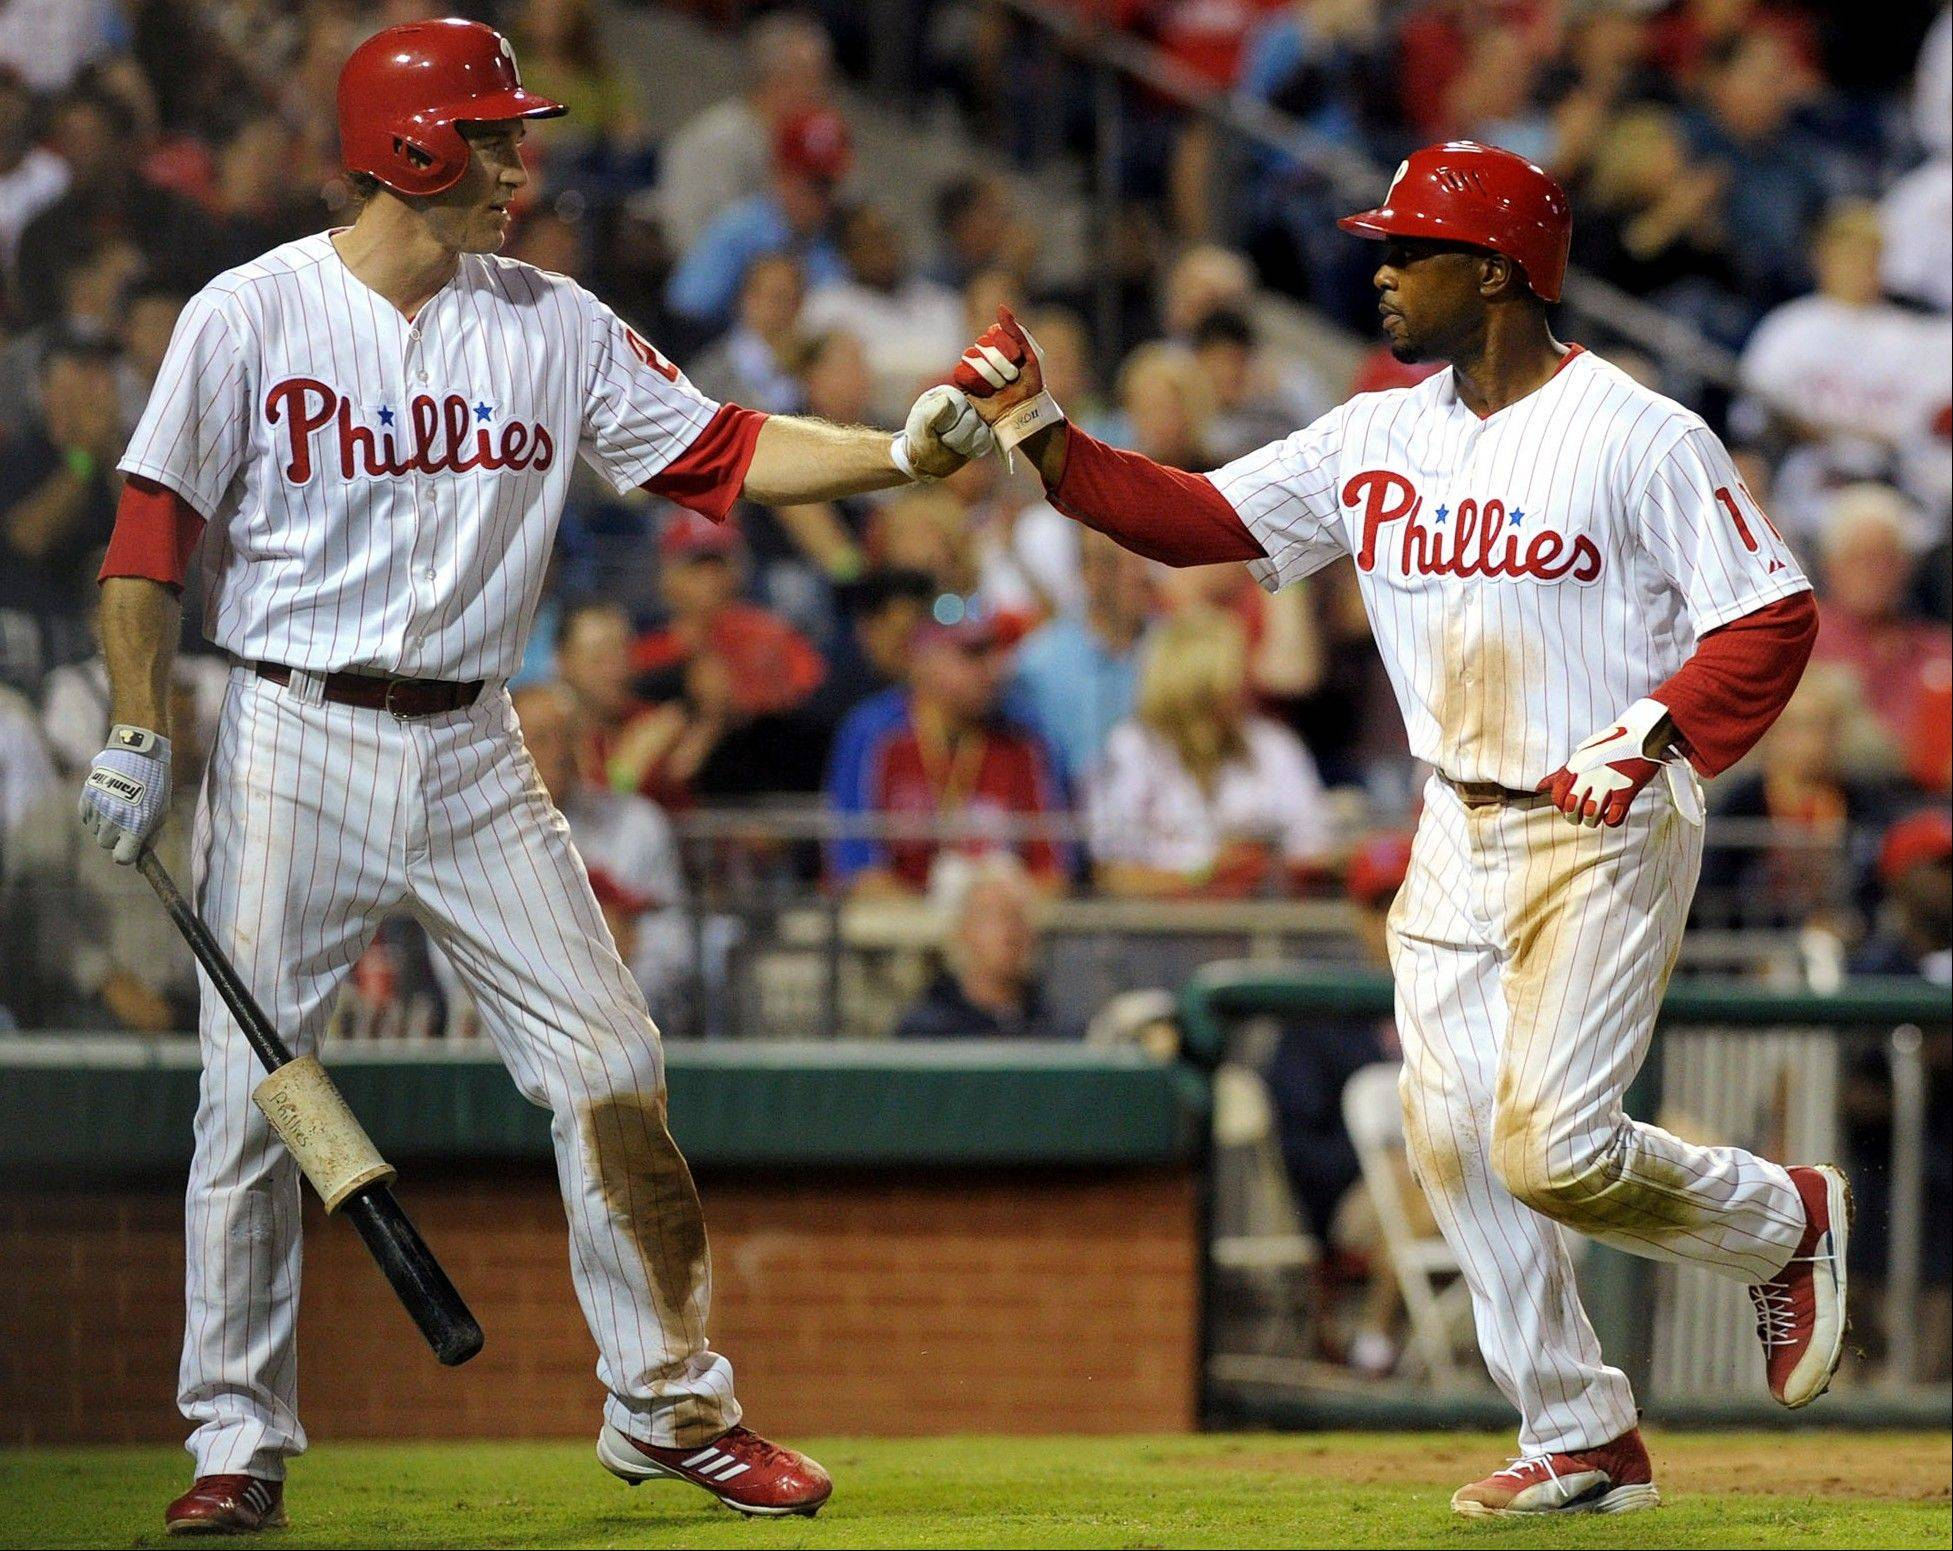 Philadelphia's Chase Utley, left, greets Jimmy Rollins as he crosses the plate to score on a ground ball from Juan Pierre in the fifth inning Tuesday at home against Miami.